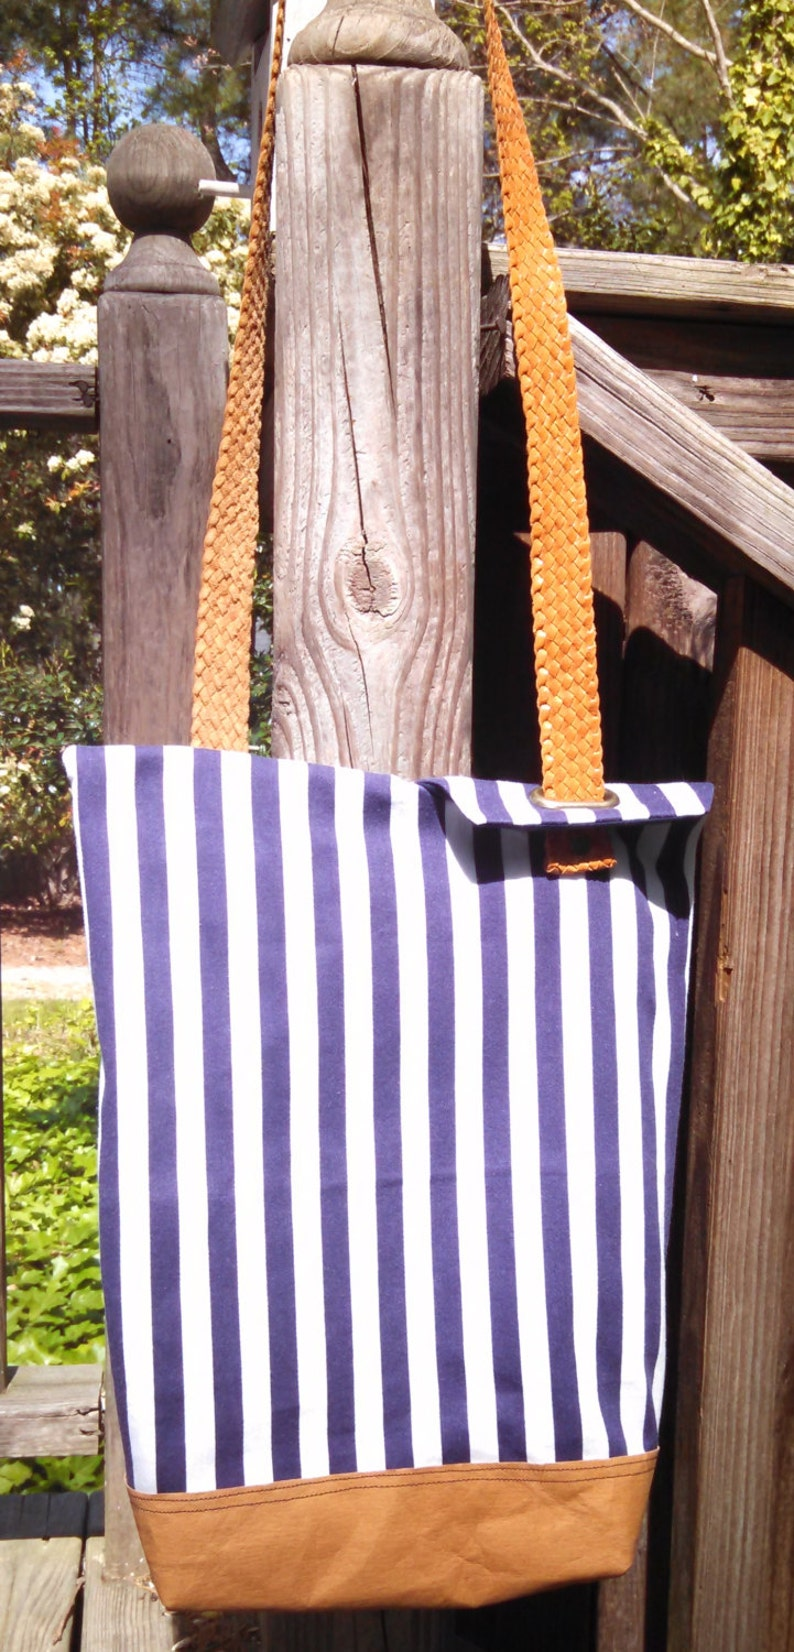 So sharp in navy and white stripes This totepurse has one leather strap that is unique and holds the flaps closed when purse is held.